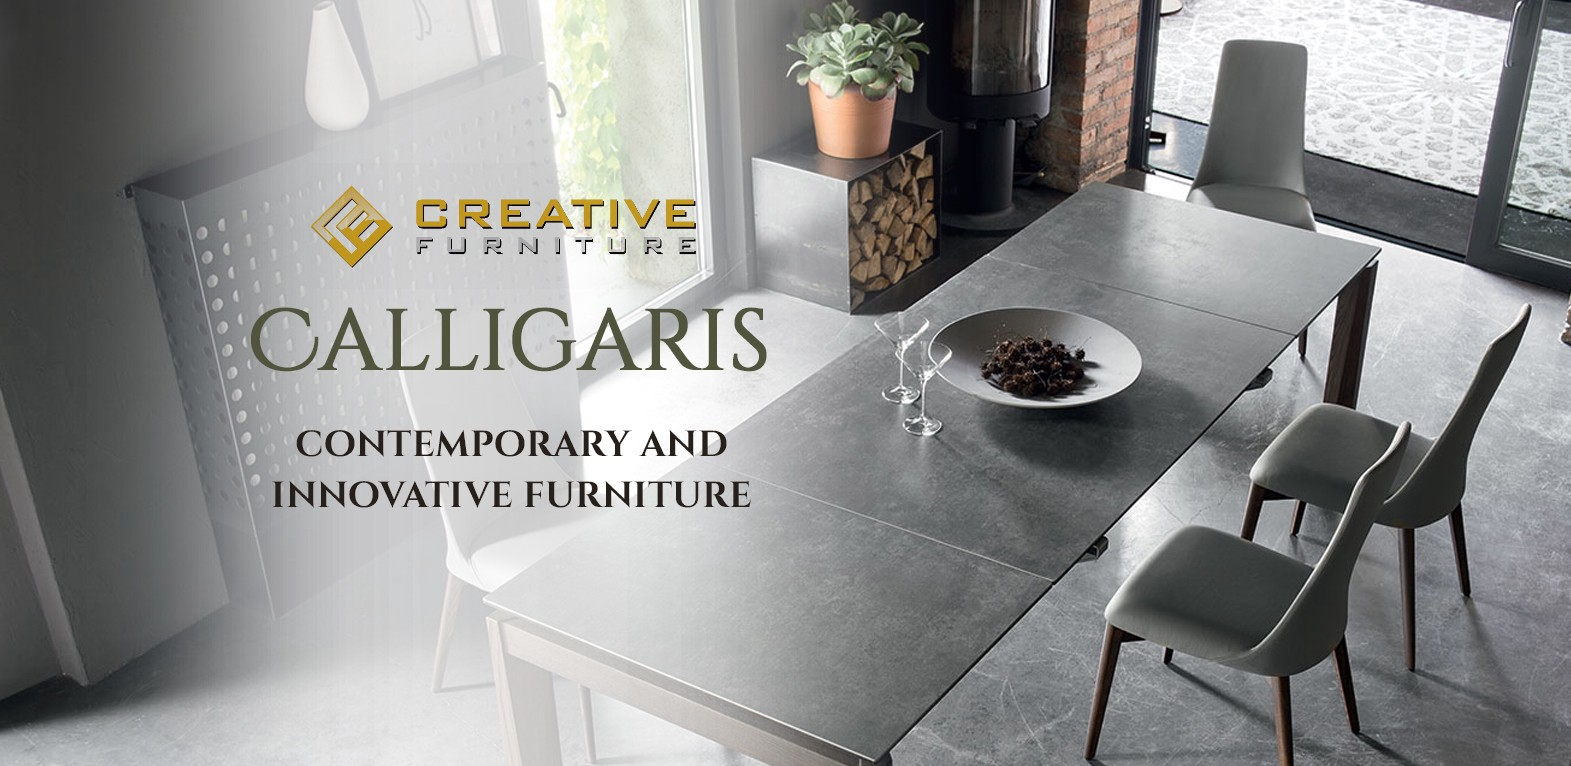 Calligaris Contemporary Italian Furniture